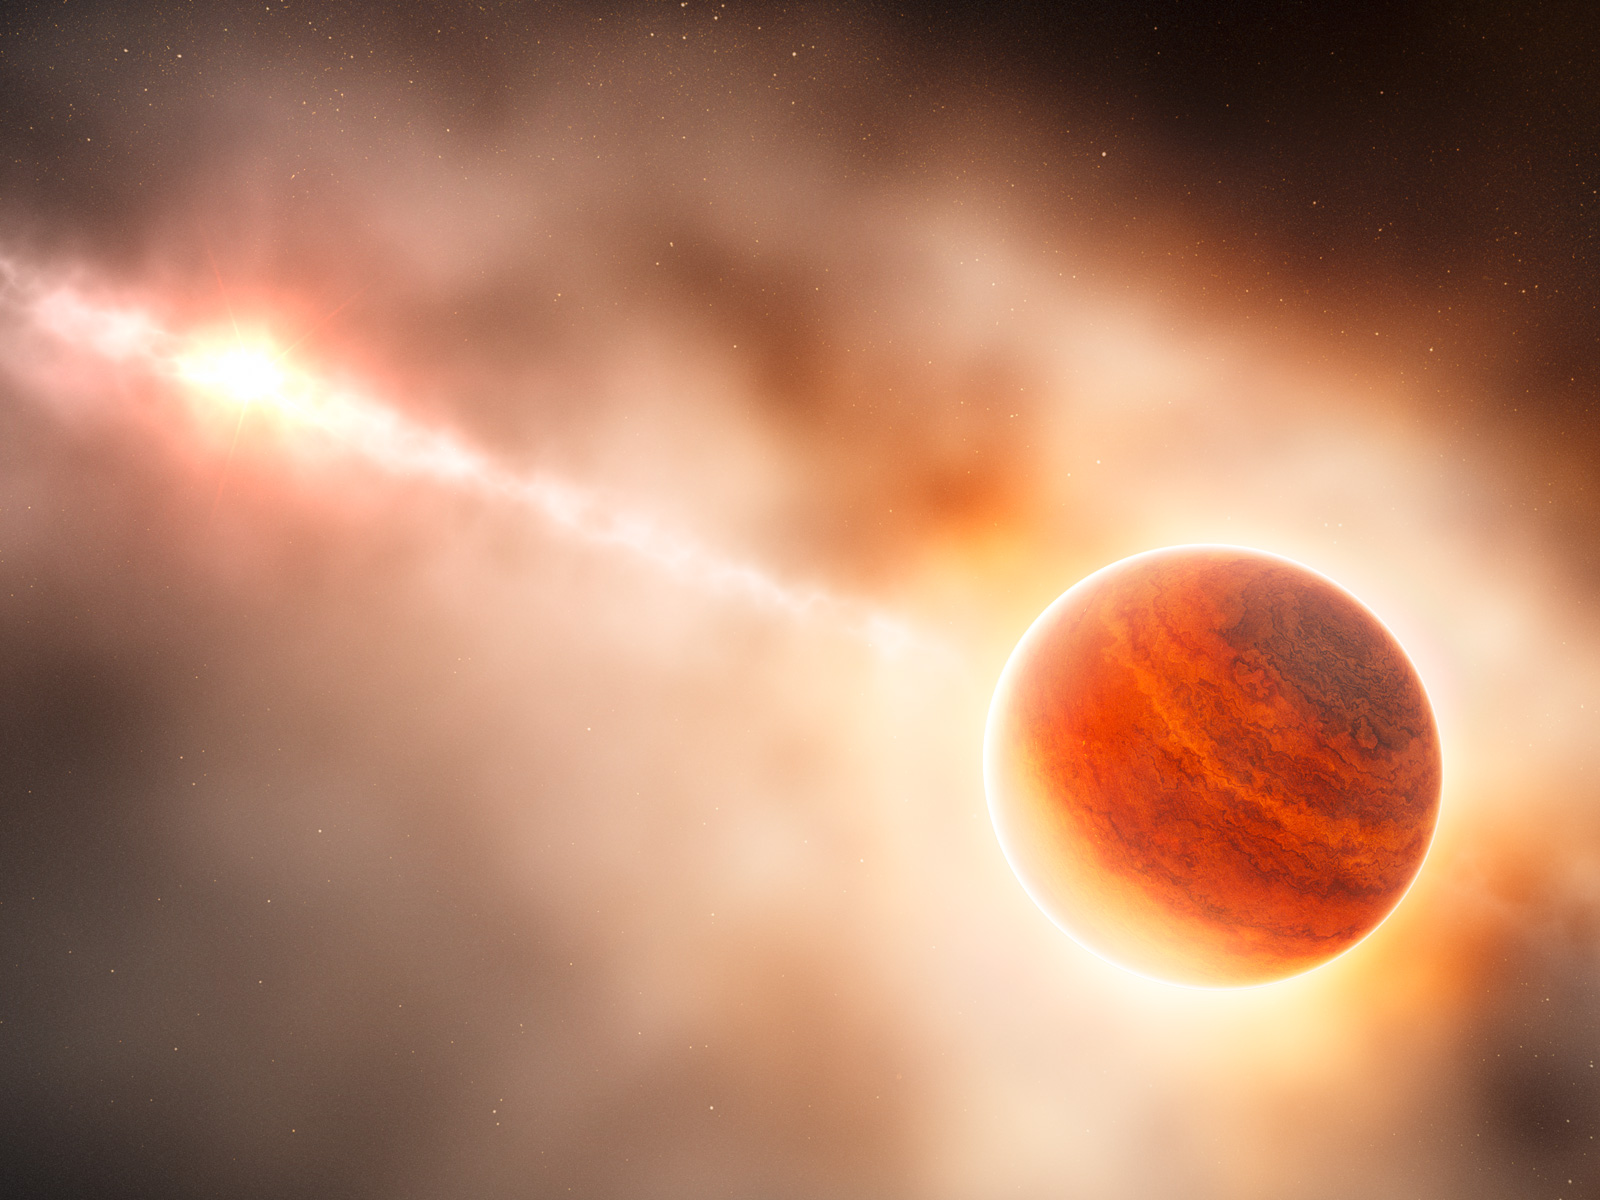 Artist's Impression of Gas Giant Planet Forming Around Young Star 1600